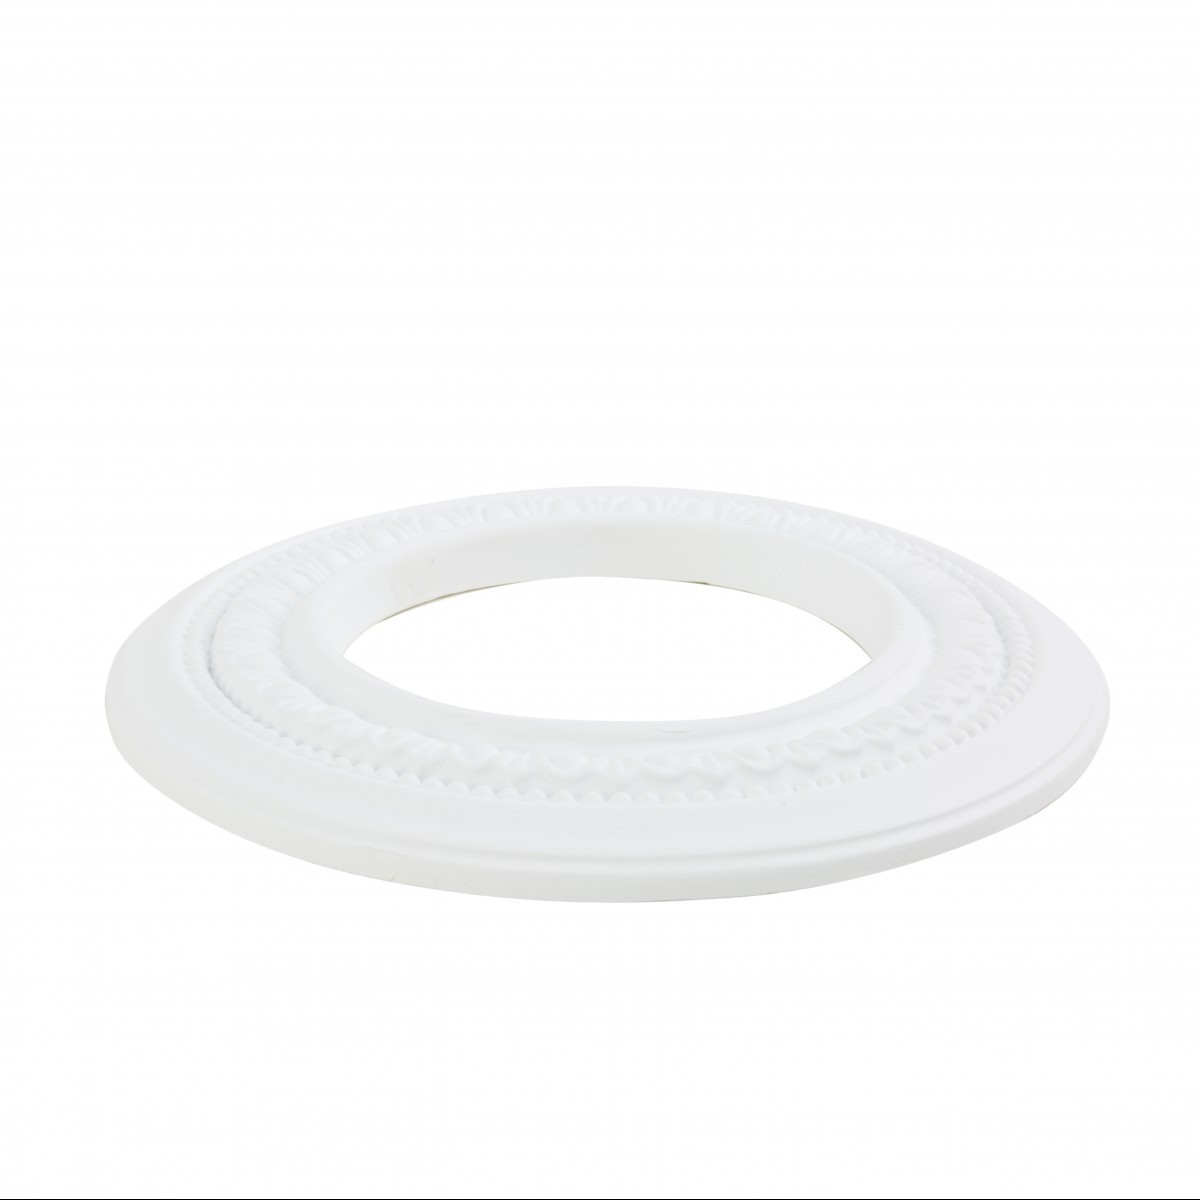 10 Spot Light Ring White Trim 5 ID x 9 OD Mini Medallion Light Medallion Light Medallions Lighting Medallion